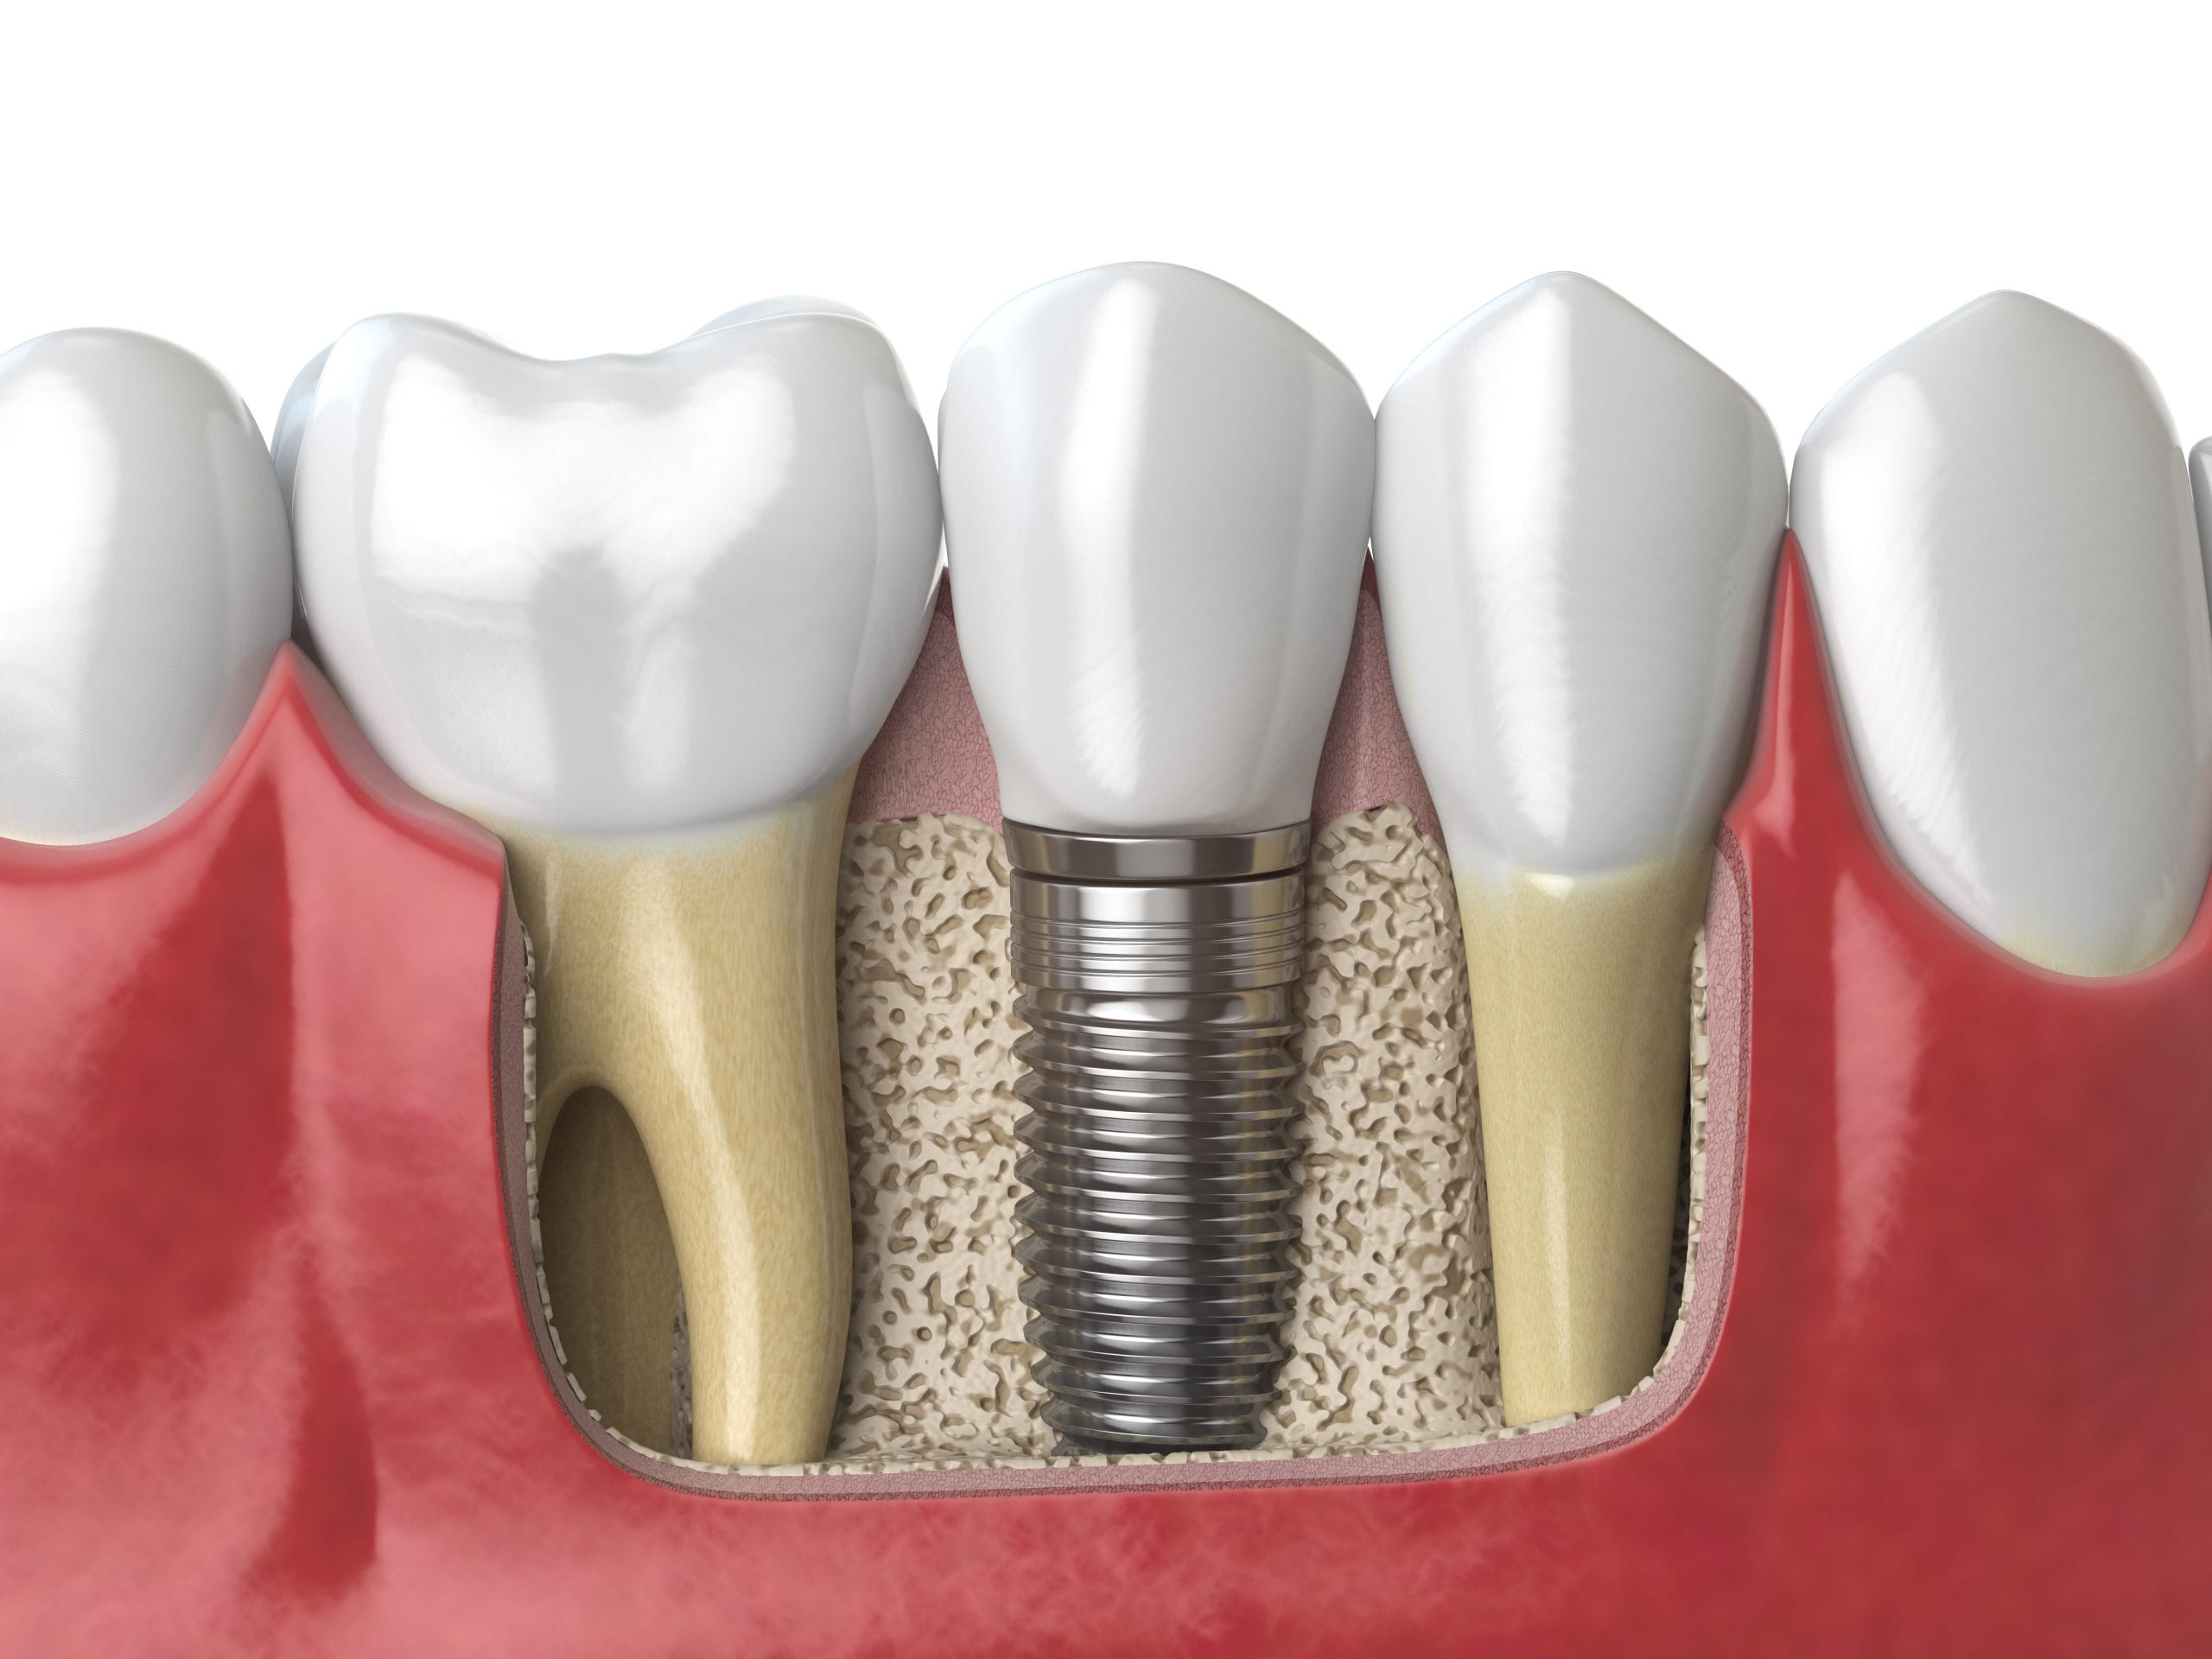 Dental Implants & Mini Implants: Which Is Right For Me?